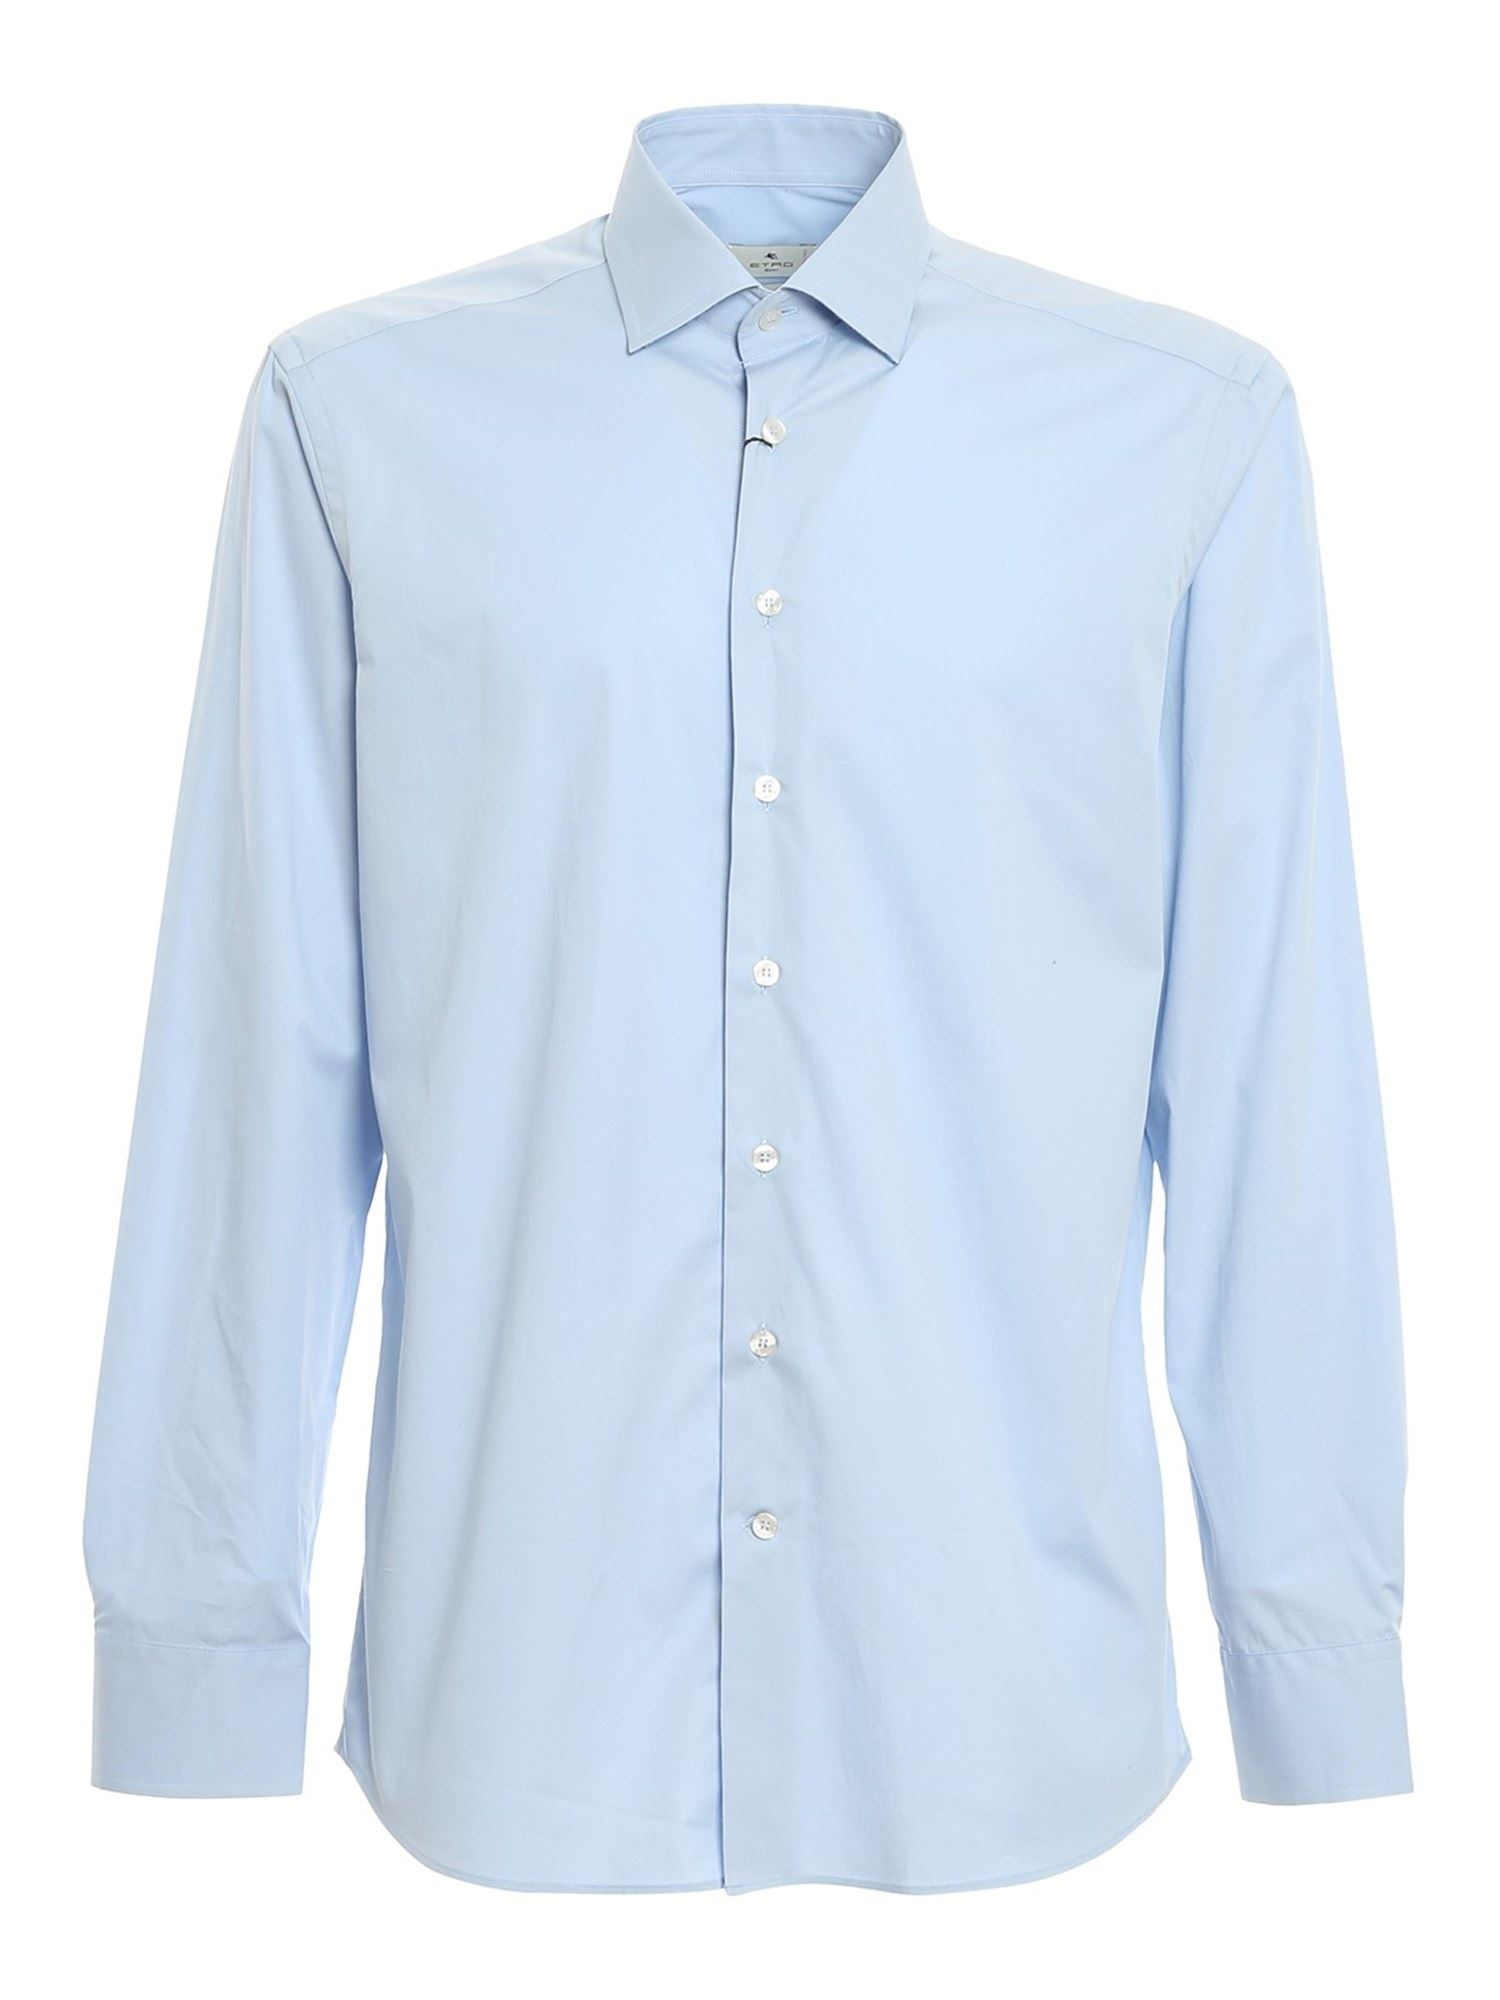 Etro COTTON POPLIN SHIRT IN LIGHT BLUE